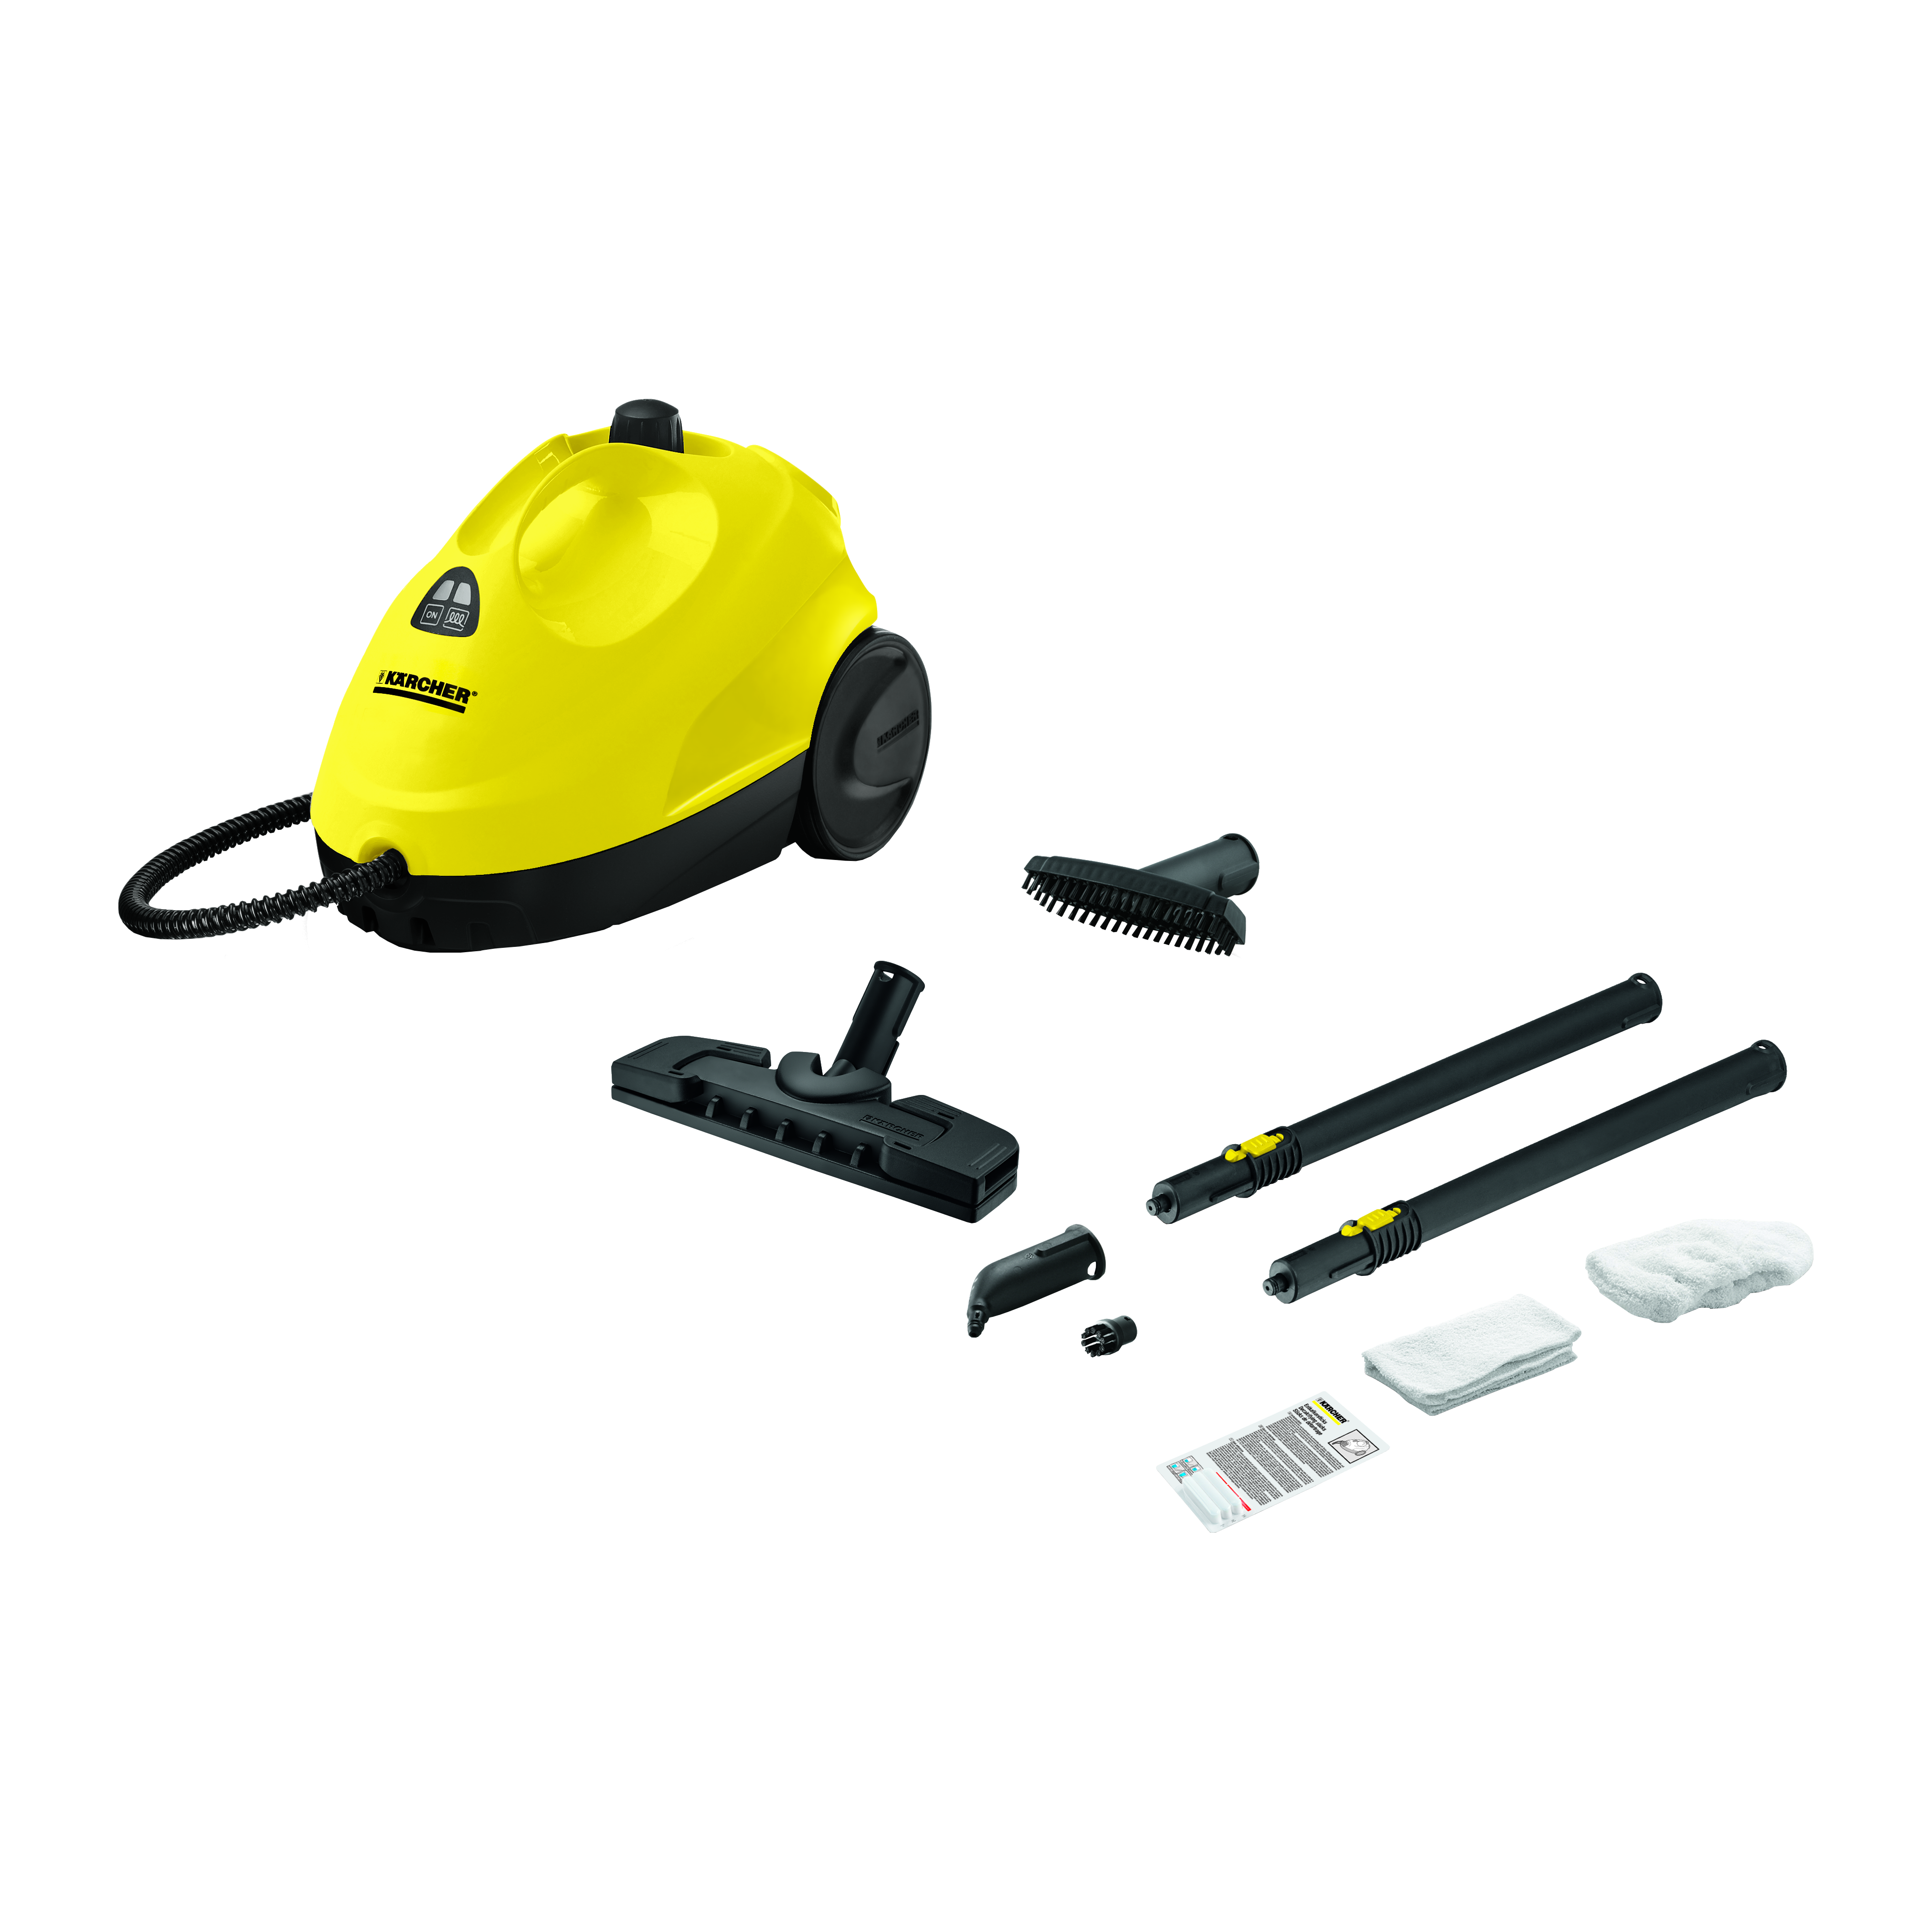 Goztisztito 1500w Sc 2 Steam Cleaners Cleaners Steam Mops